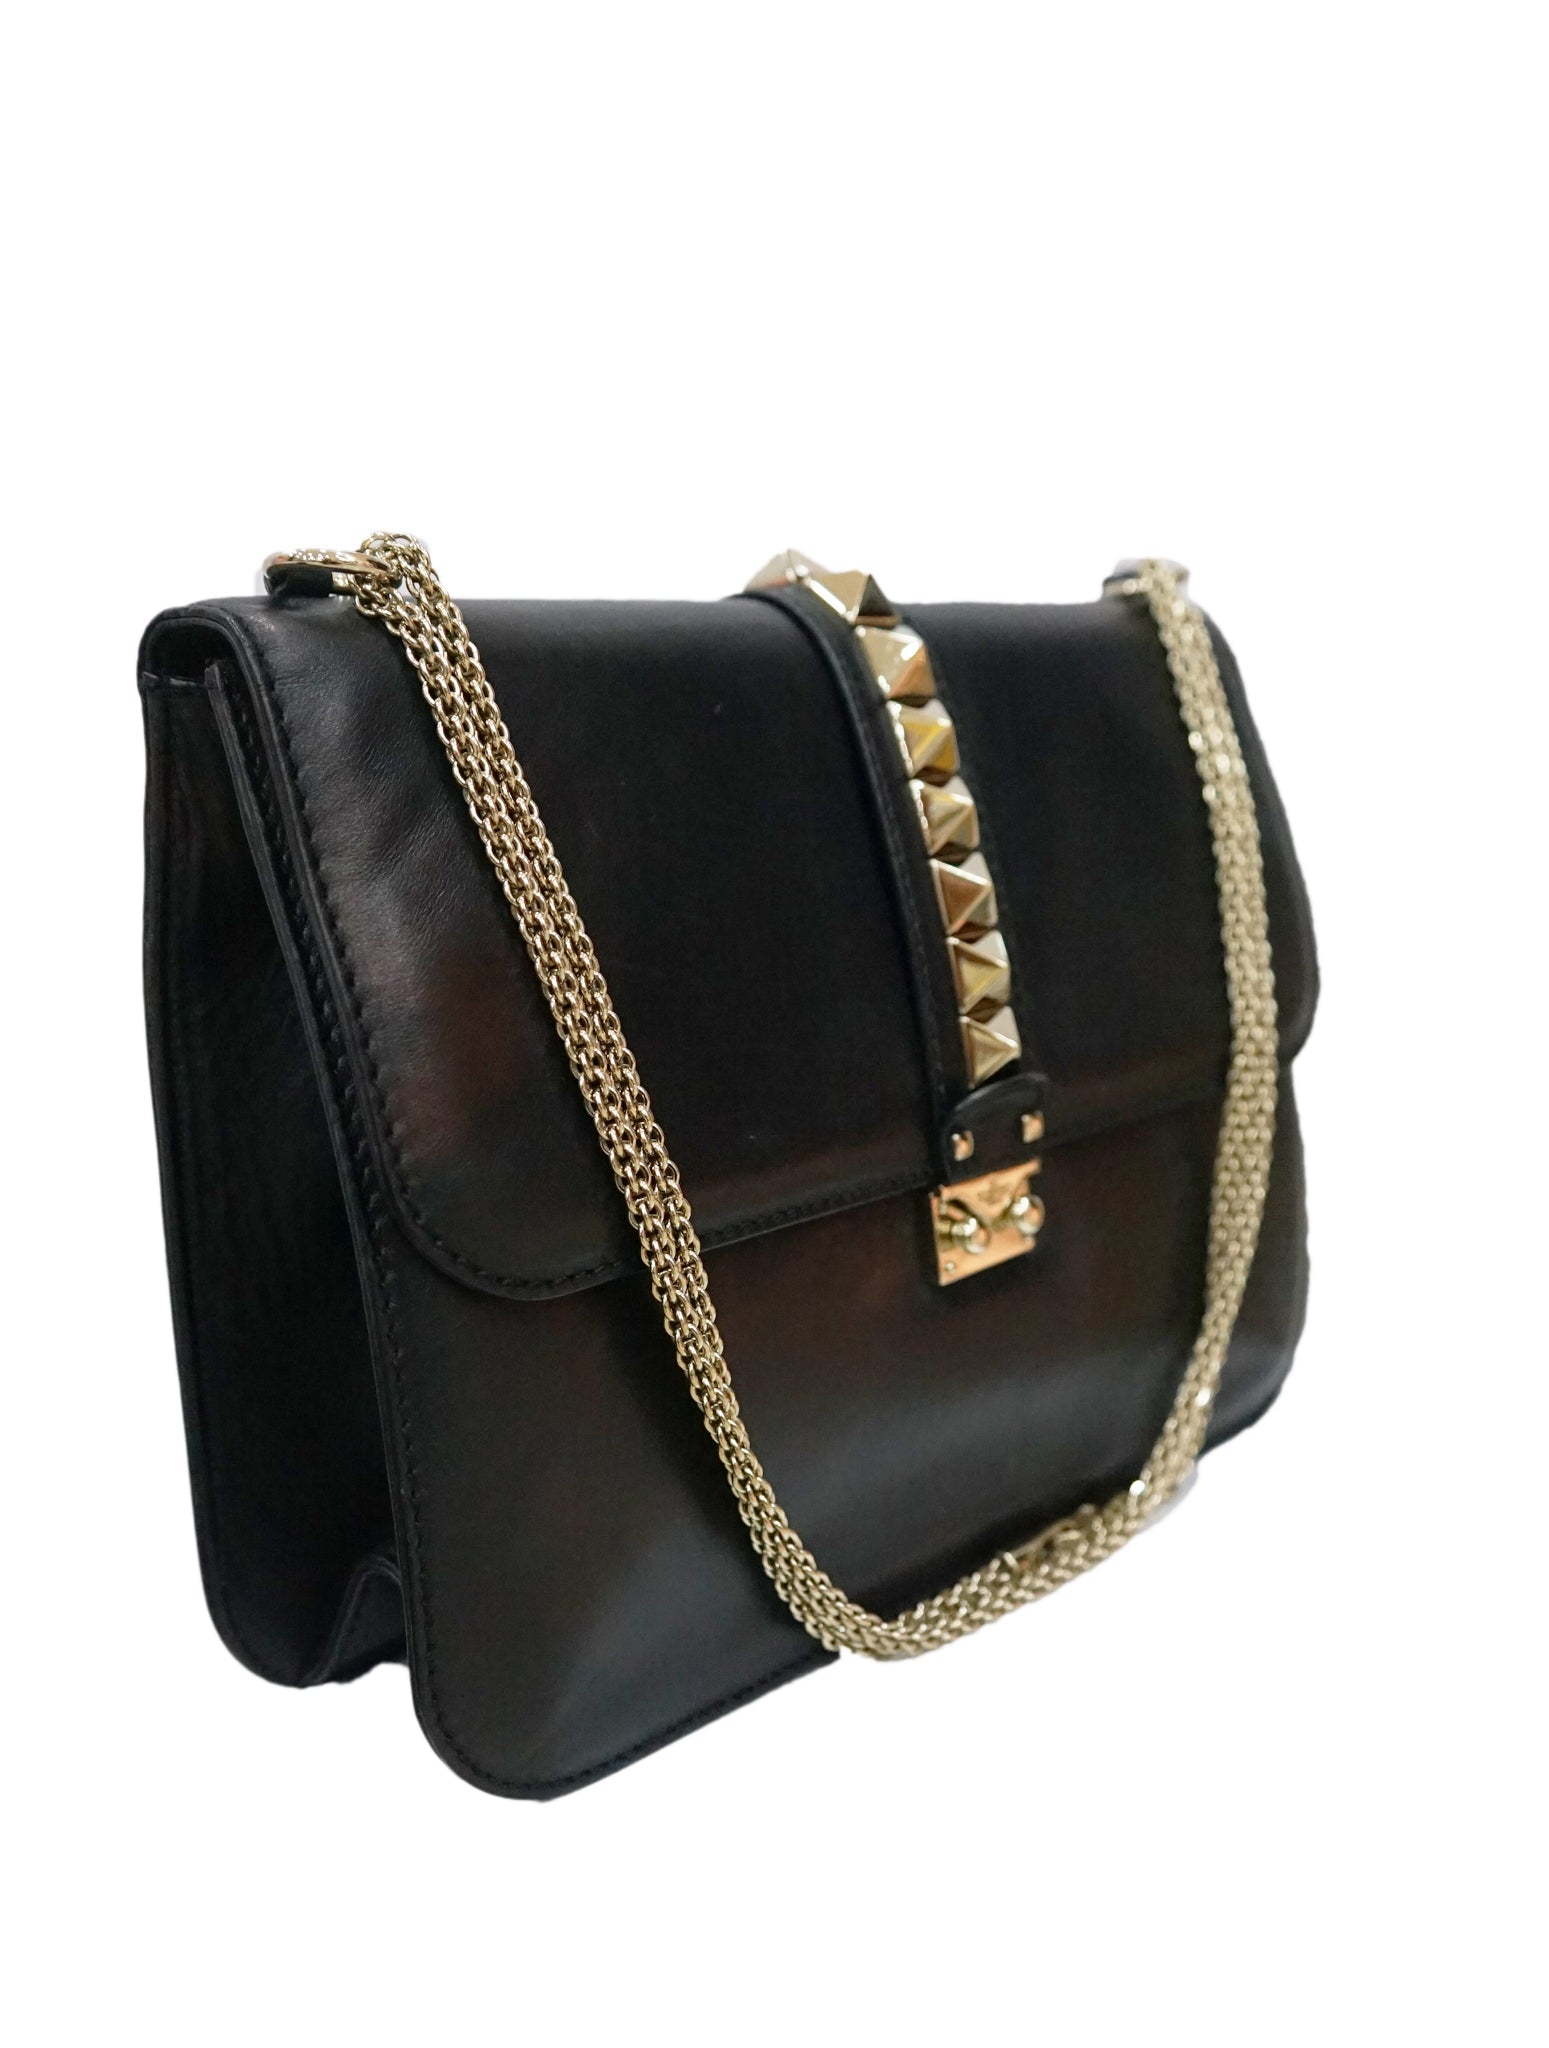 GLAM LOCK CHAIN ROCKSTUD SHOULDER BAG